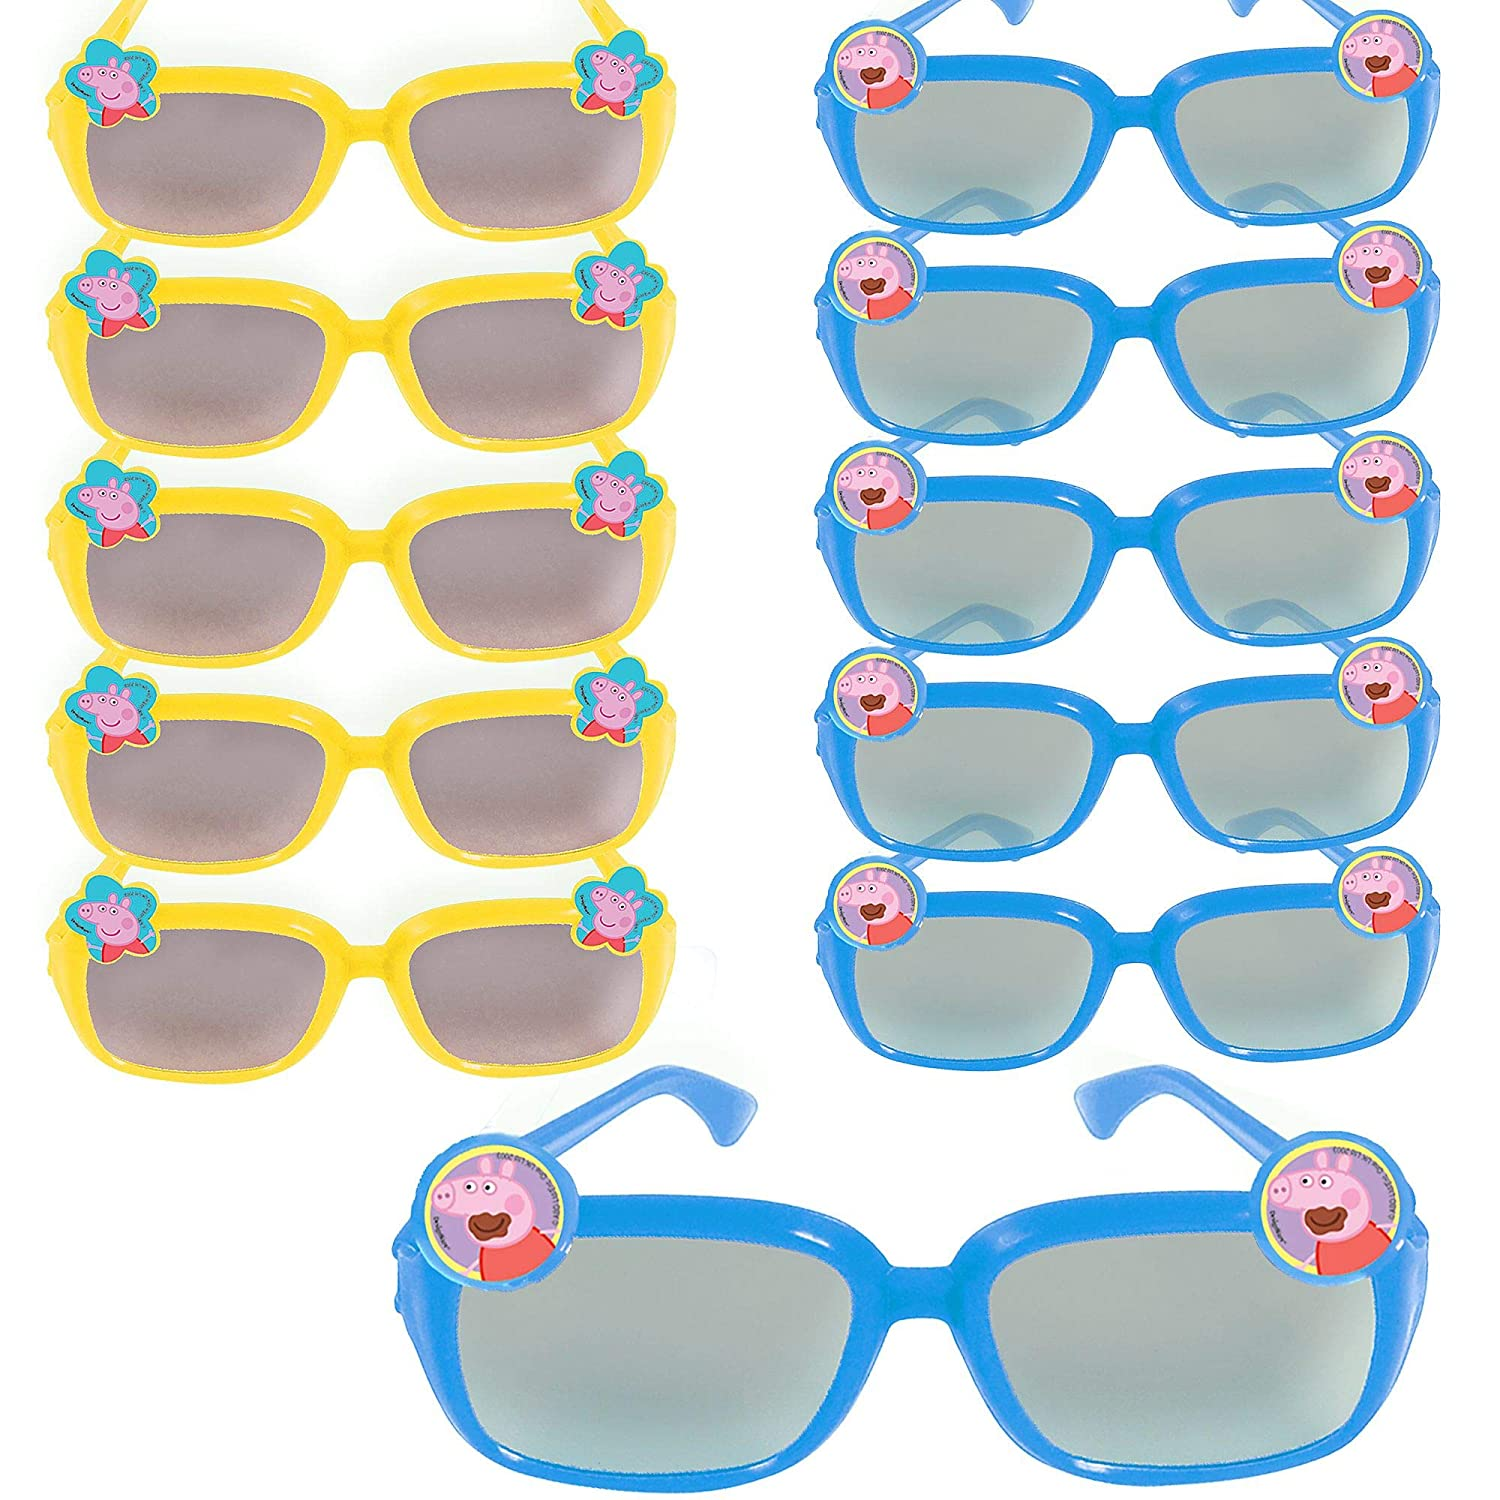 Party City Peppa Pig Sunglasses 24 Count, Birthday Party Favors for Kids, Plastic, 2 Assorted Colors: Blue and Yellow